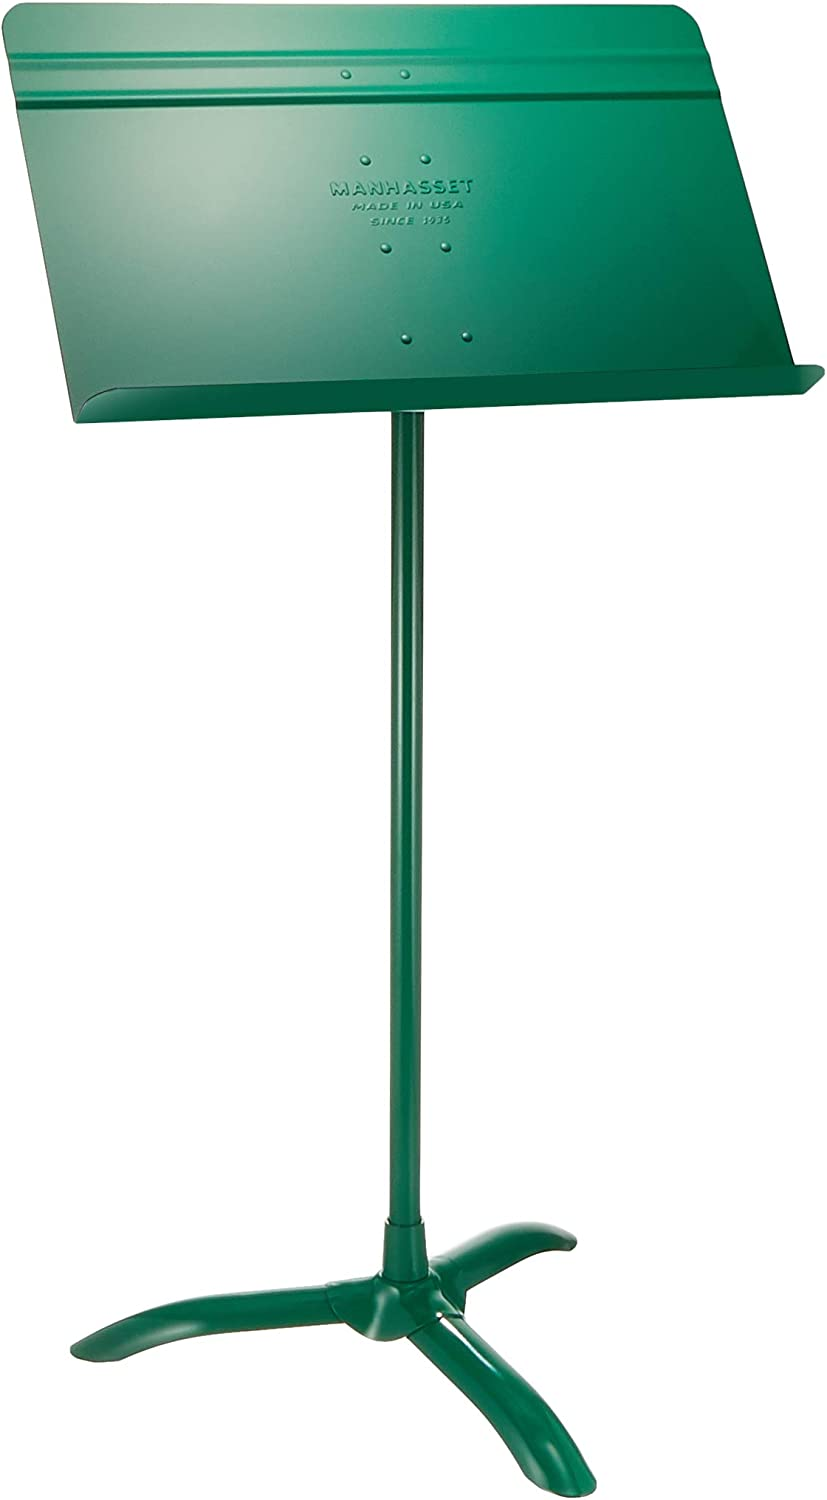 Manhasset Music 4801G Stand 40% OFF Cheap NEW before selling ☆ Sale